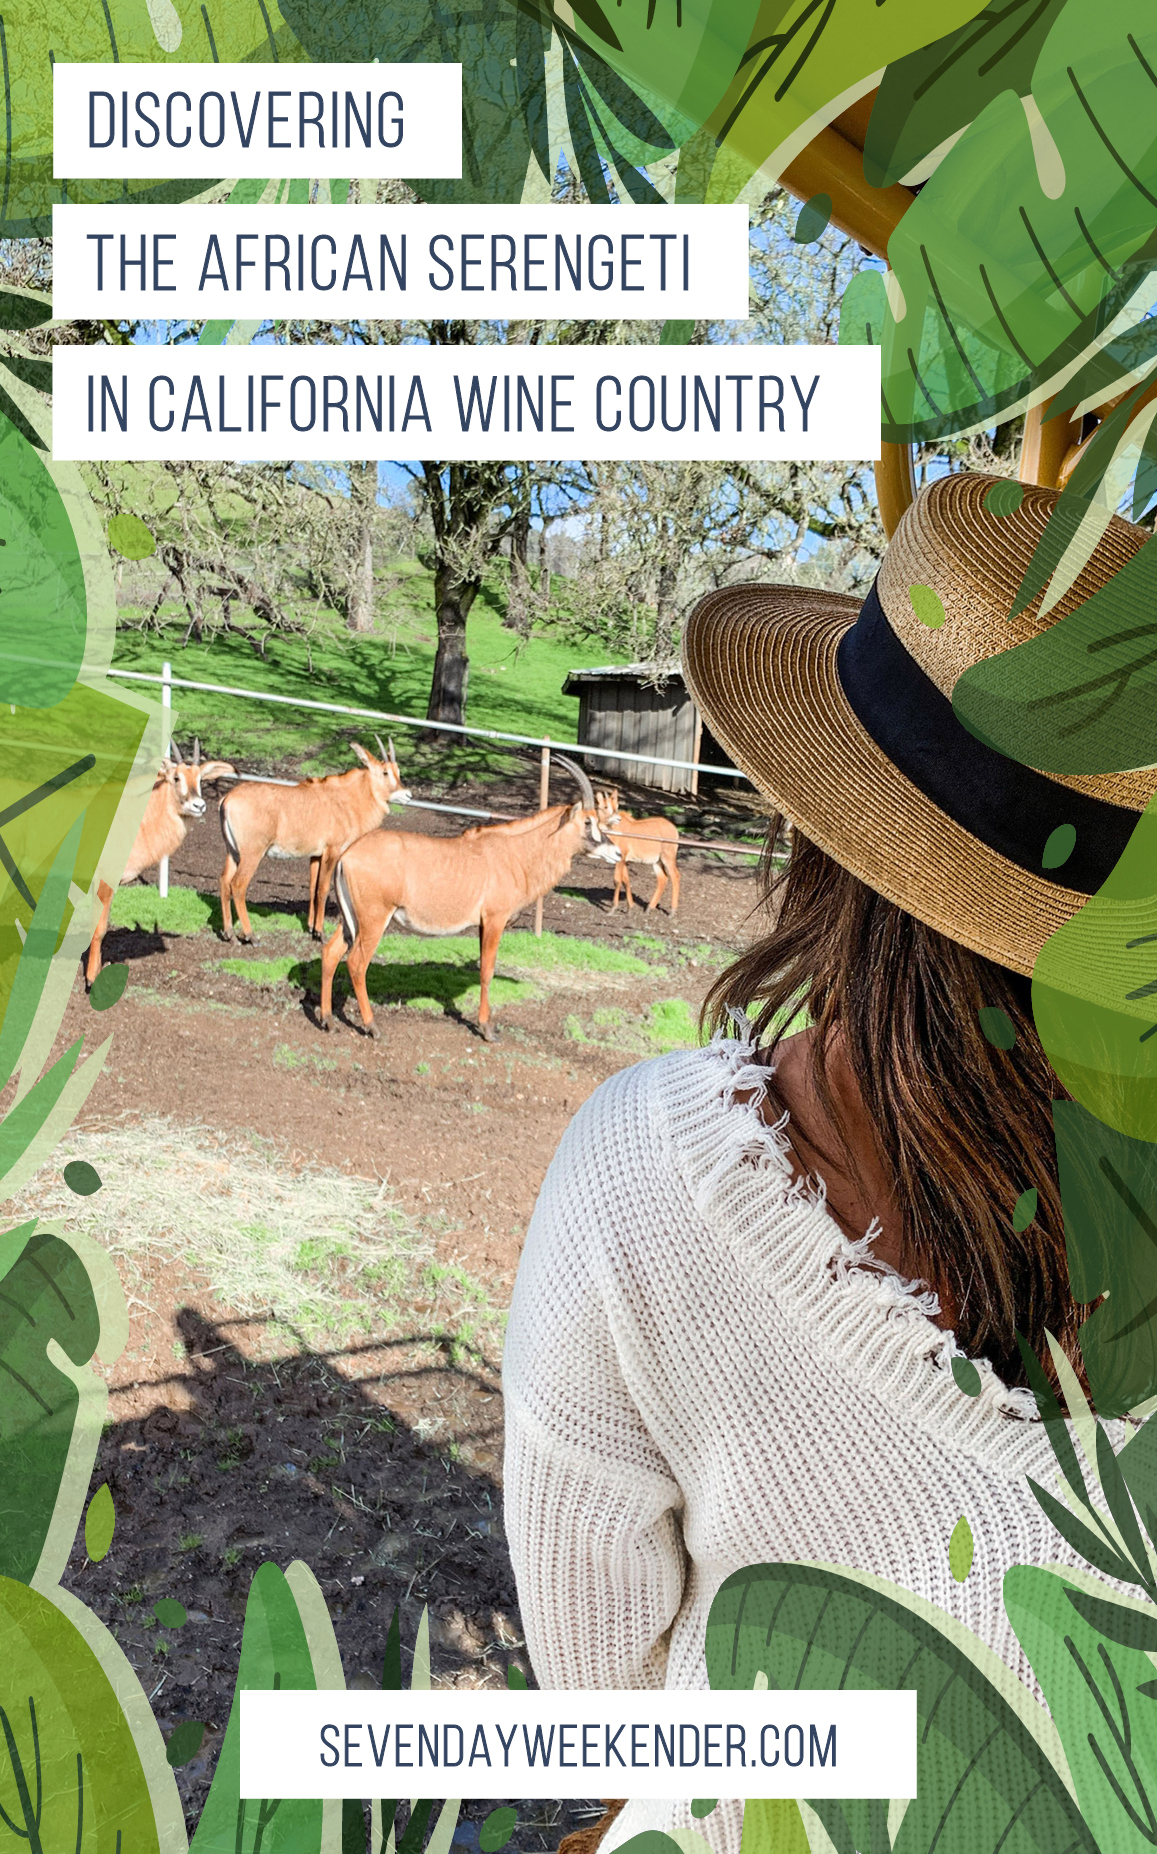 Discovering the African Serengeti in California Wine Country